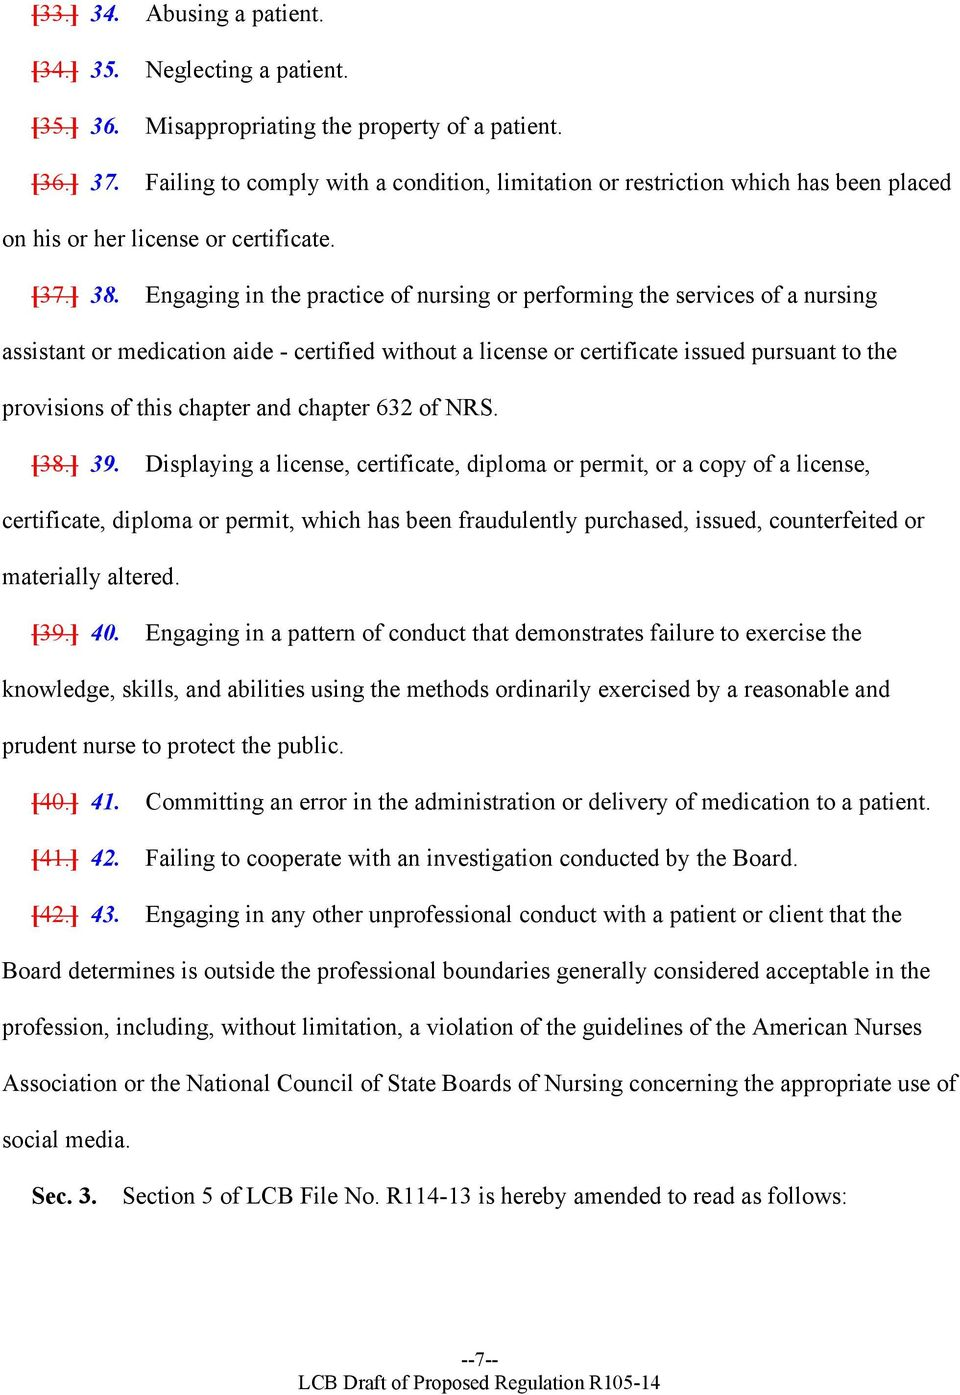 Engaging in the practice of nursing or performing the services of a nursing assistant or medication aide - certified without a license or certificate issued pursuant to the provisions of this chapter